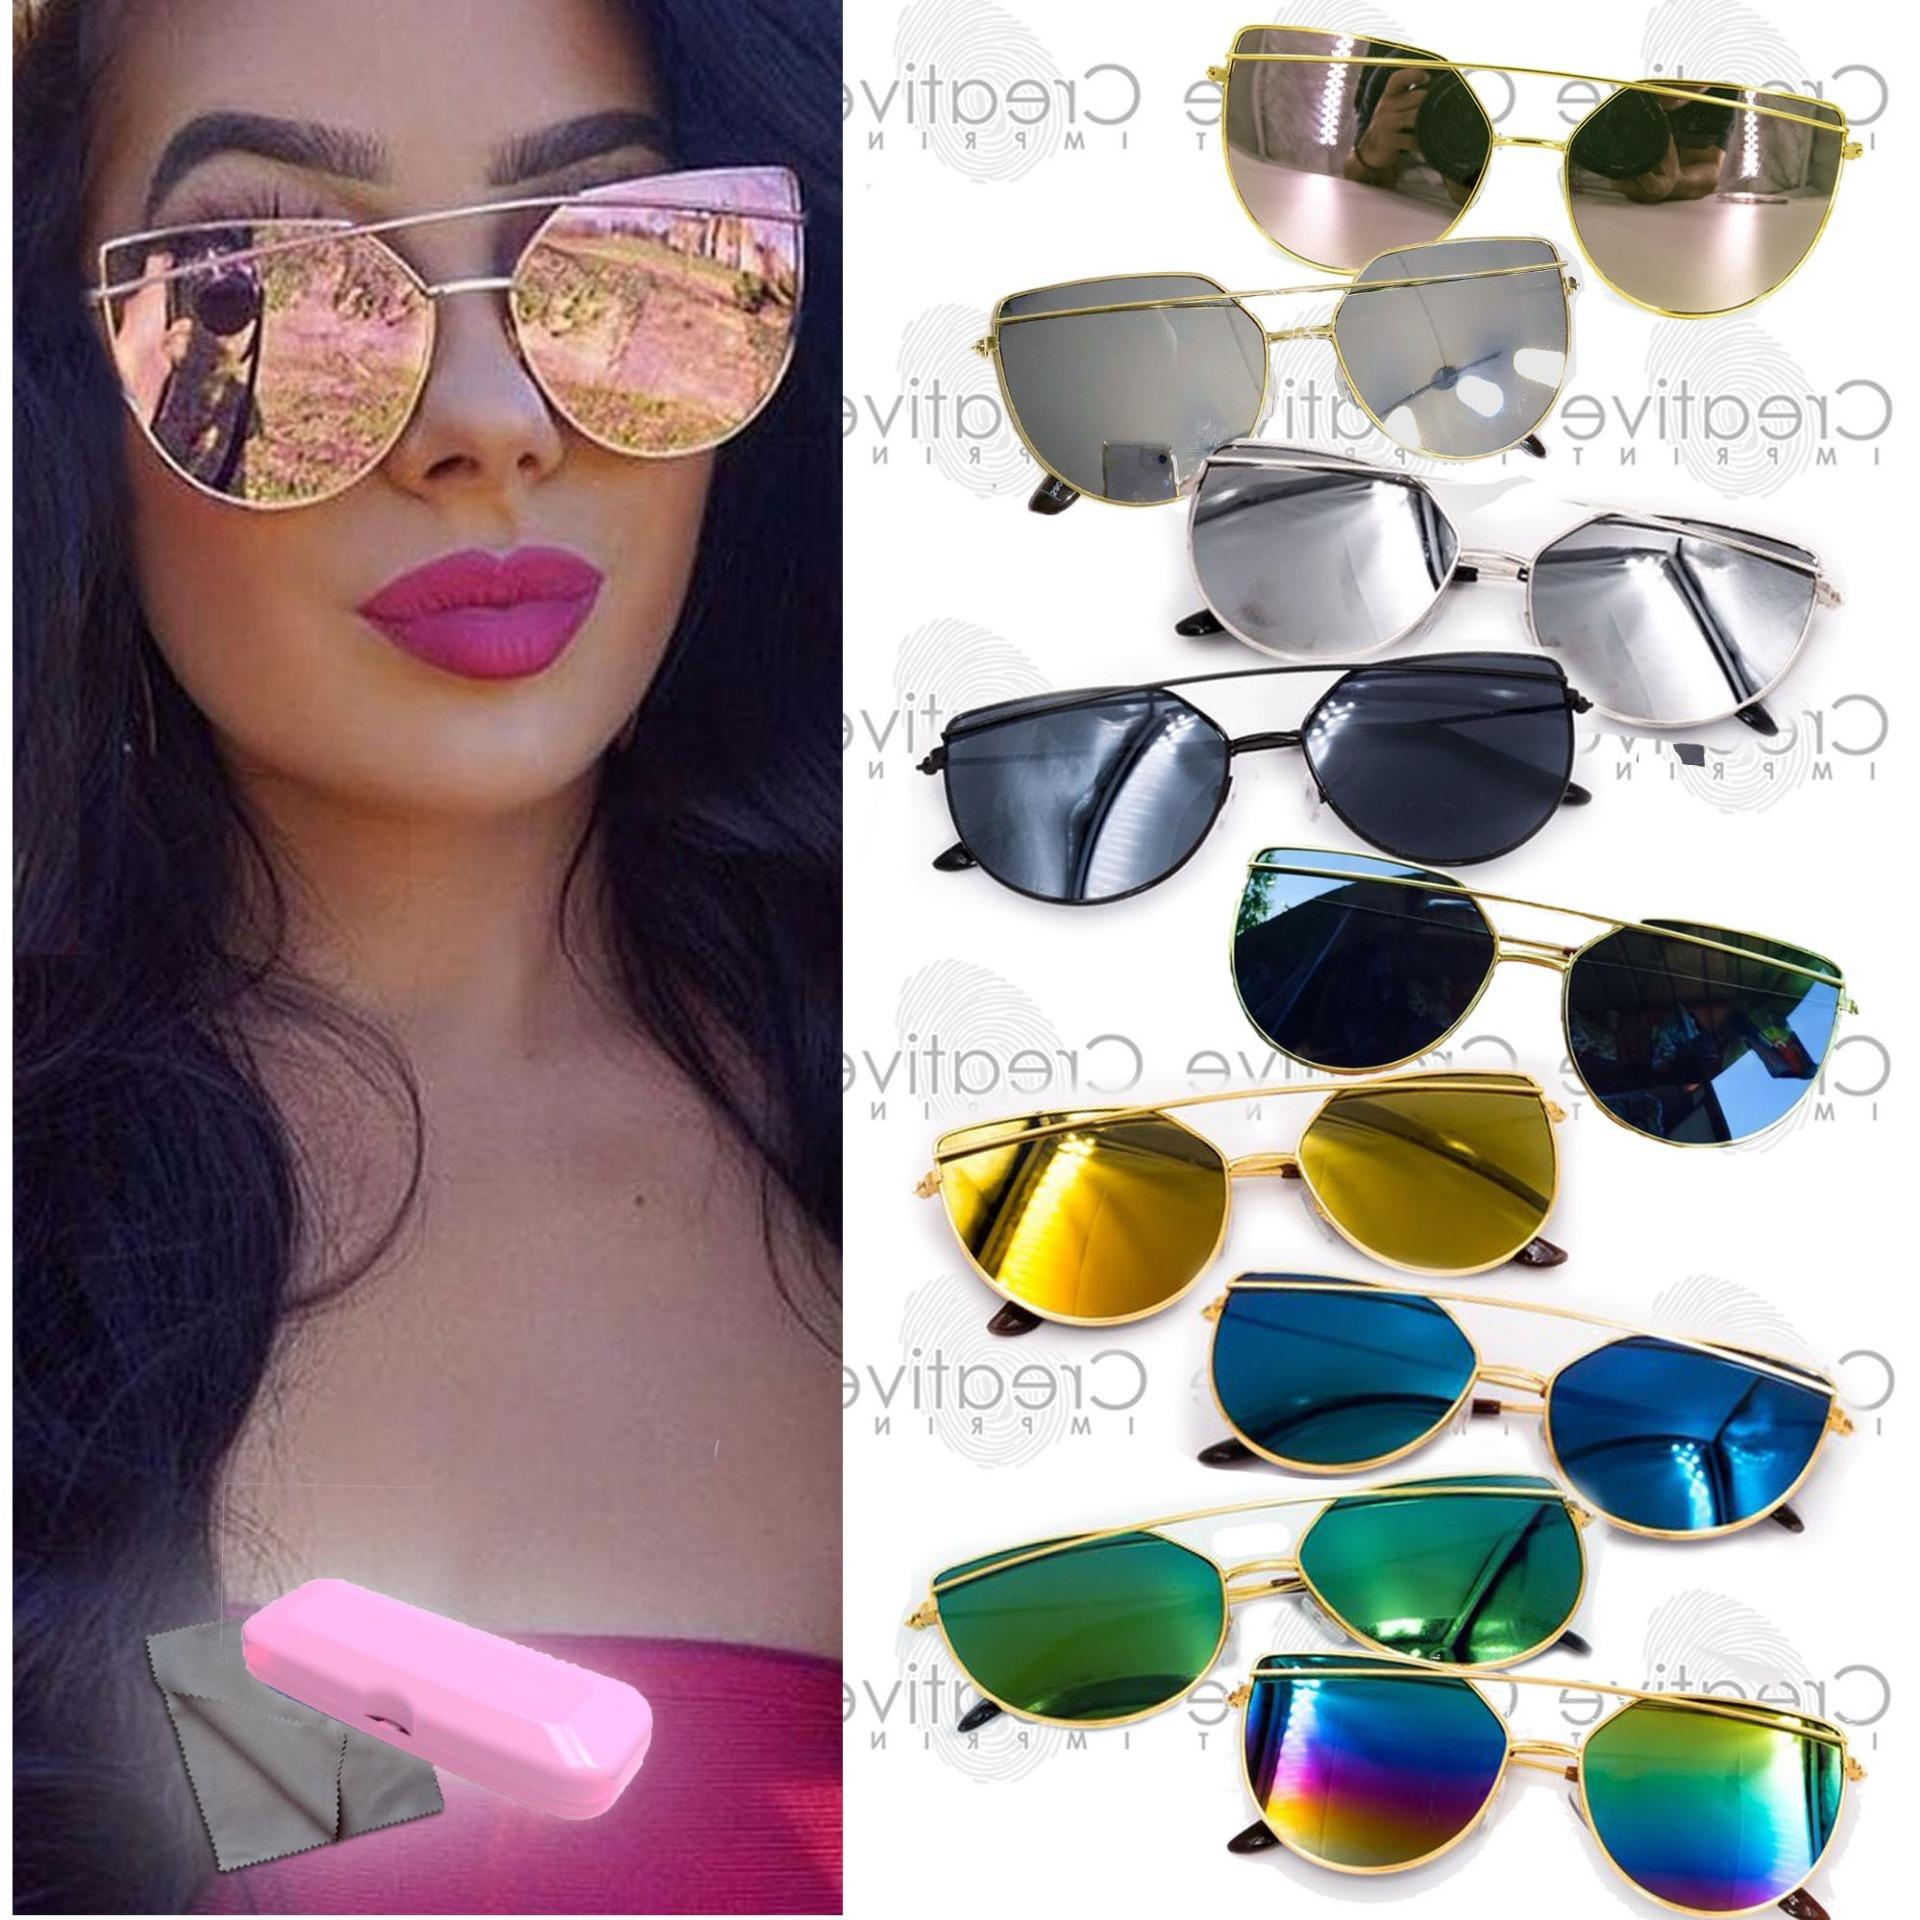 191fe09b4cc Double Bridge Cat Eye Flat Sunnies Sunglasses (FREE CASE WIPER) Shades  Light Metal Lens